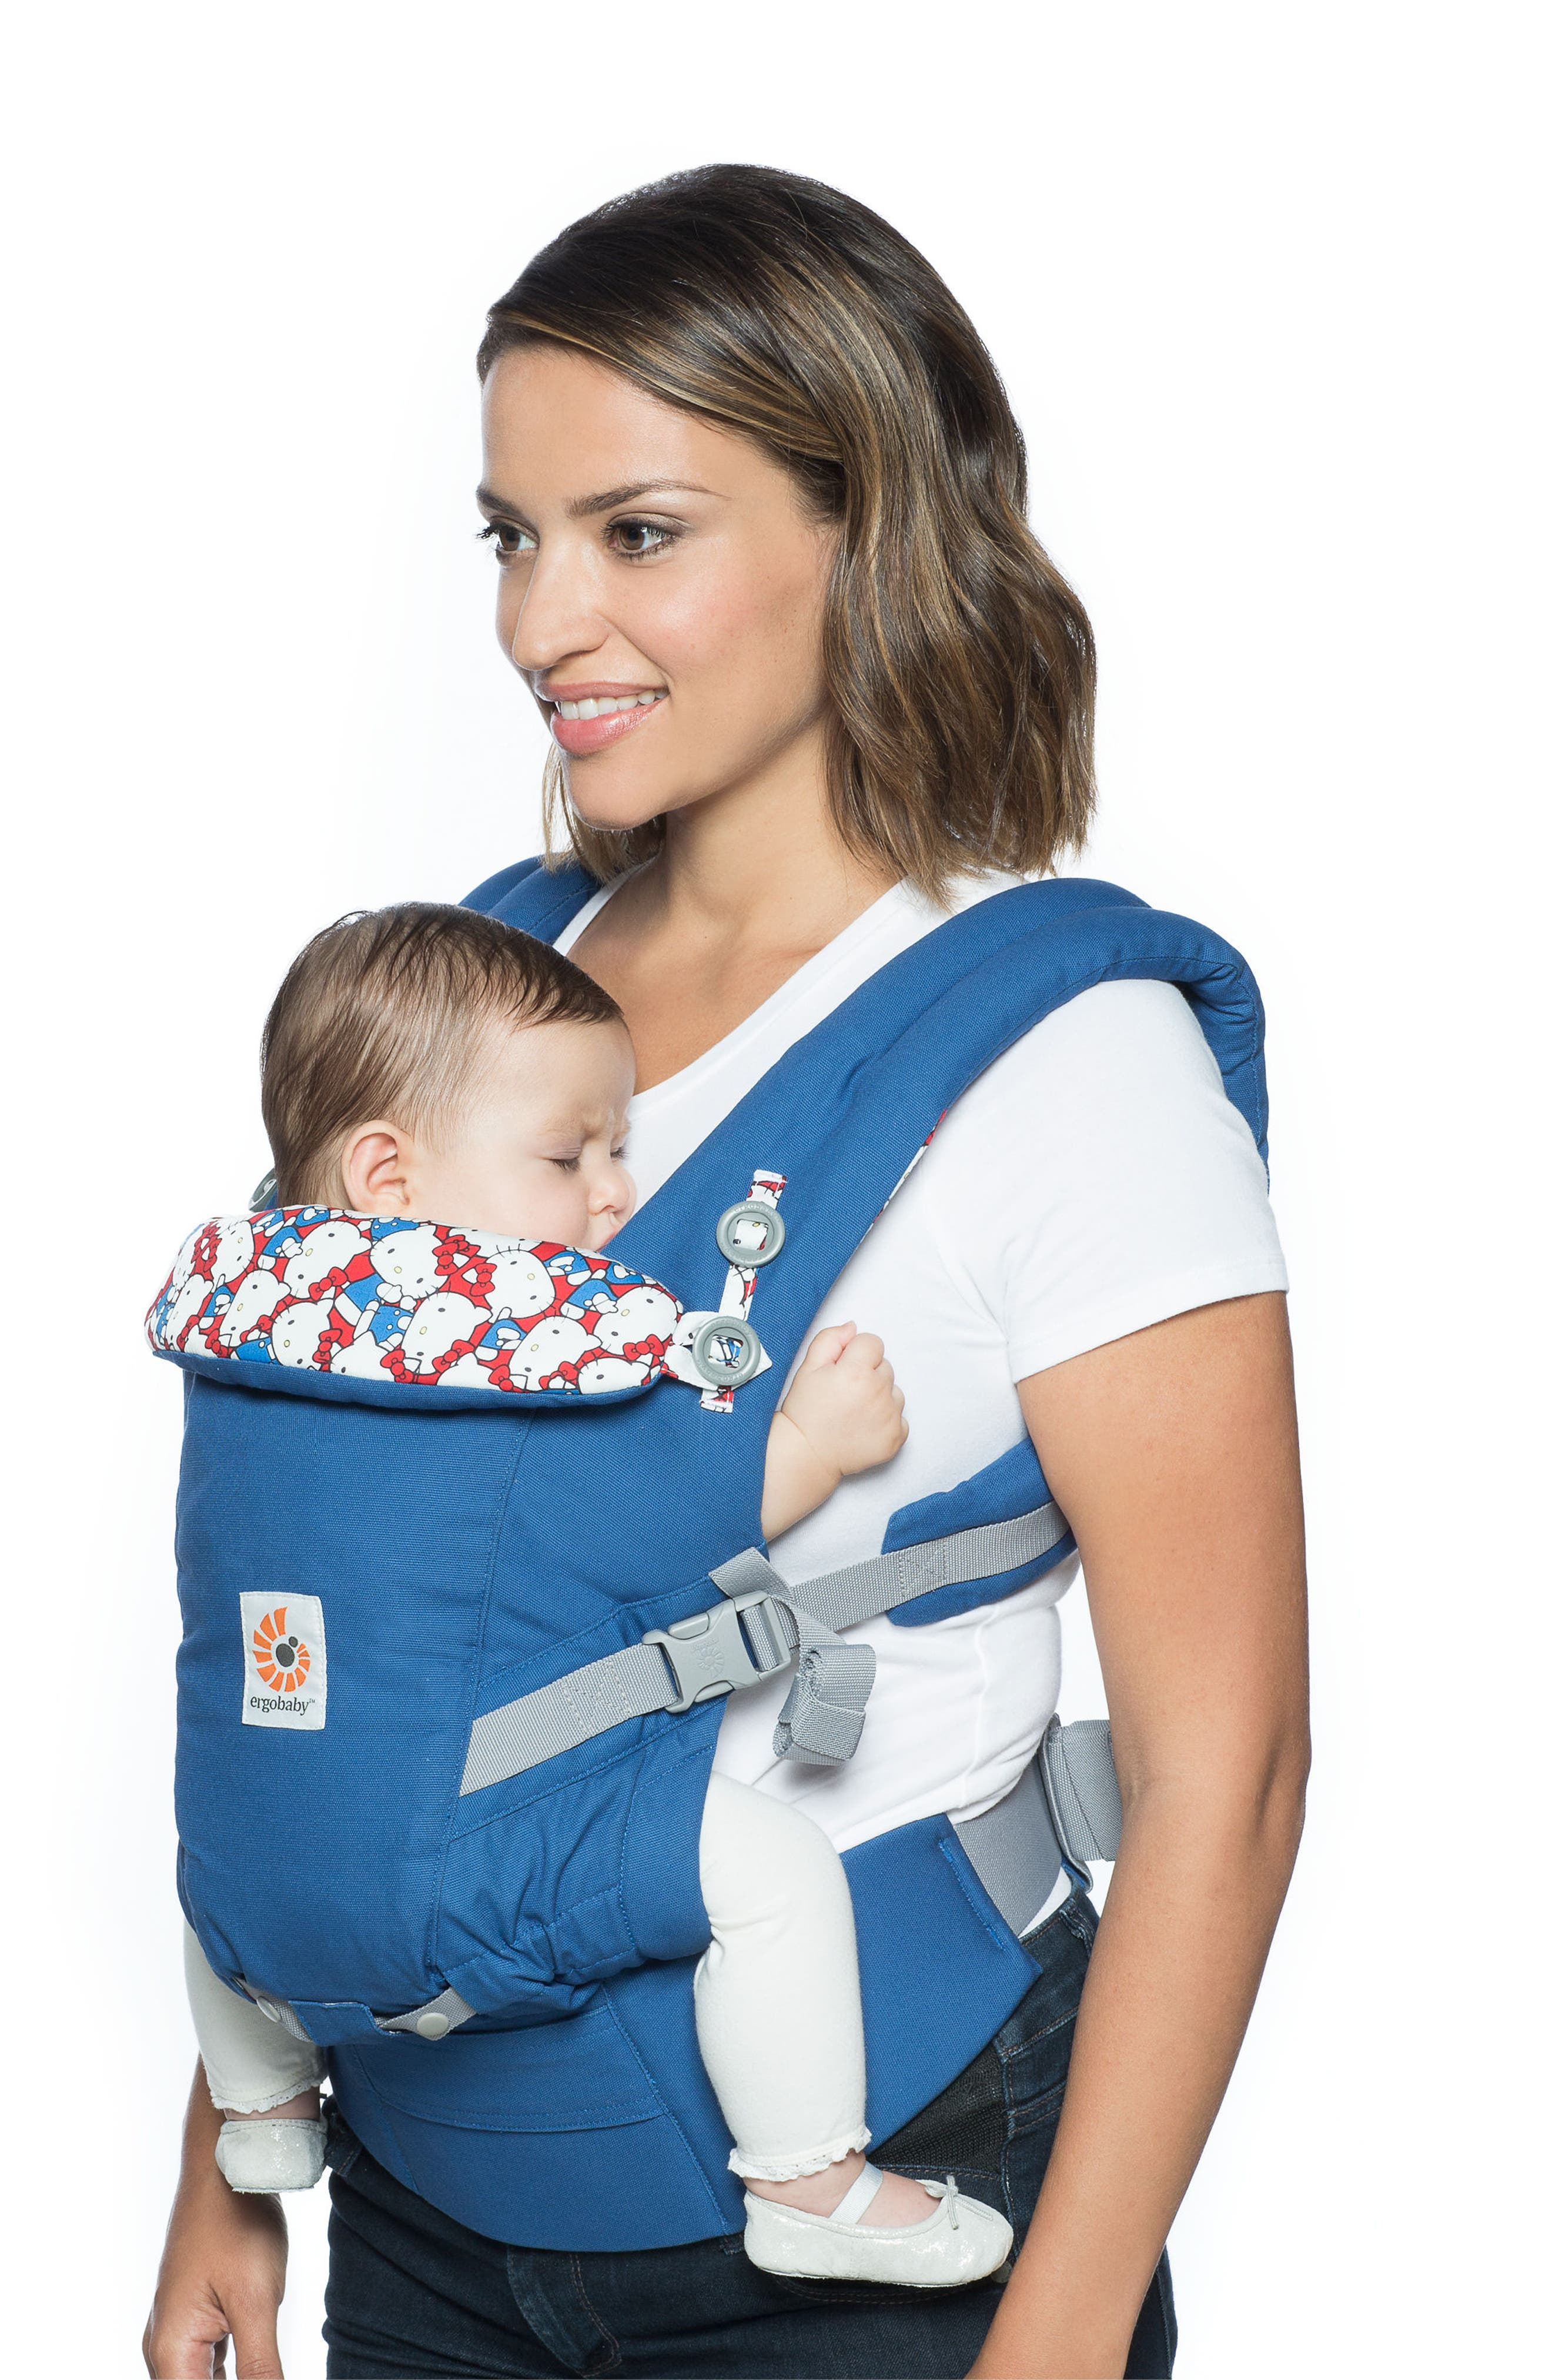 x Hello Kitty<sup>®</sup> Limited Edition Three Position ADAPT Baby Carrier,                             Alternate thumbnail 3, color,                             400